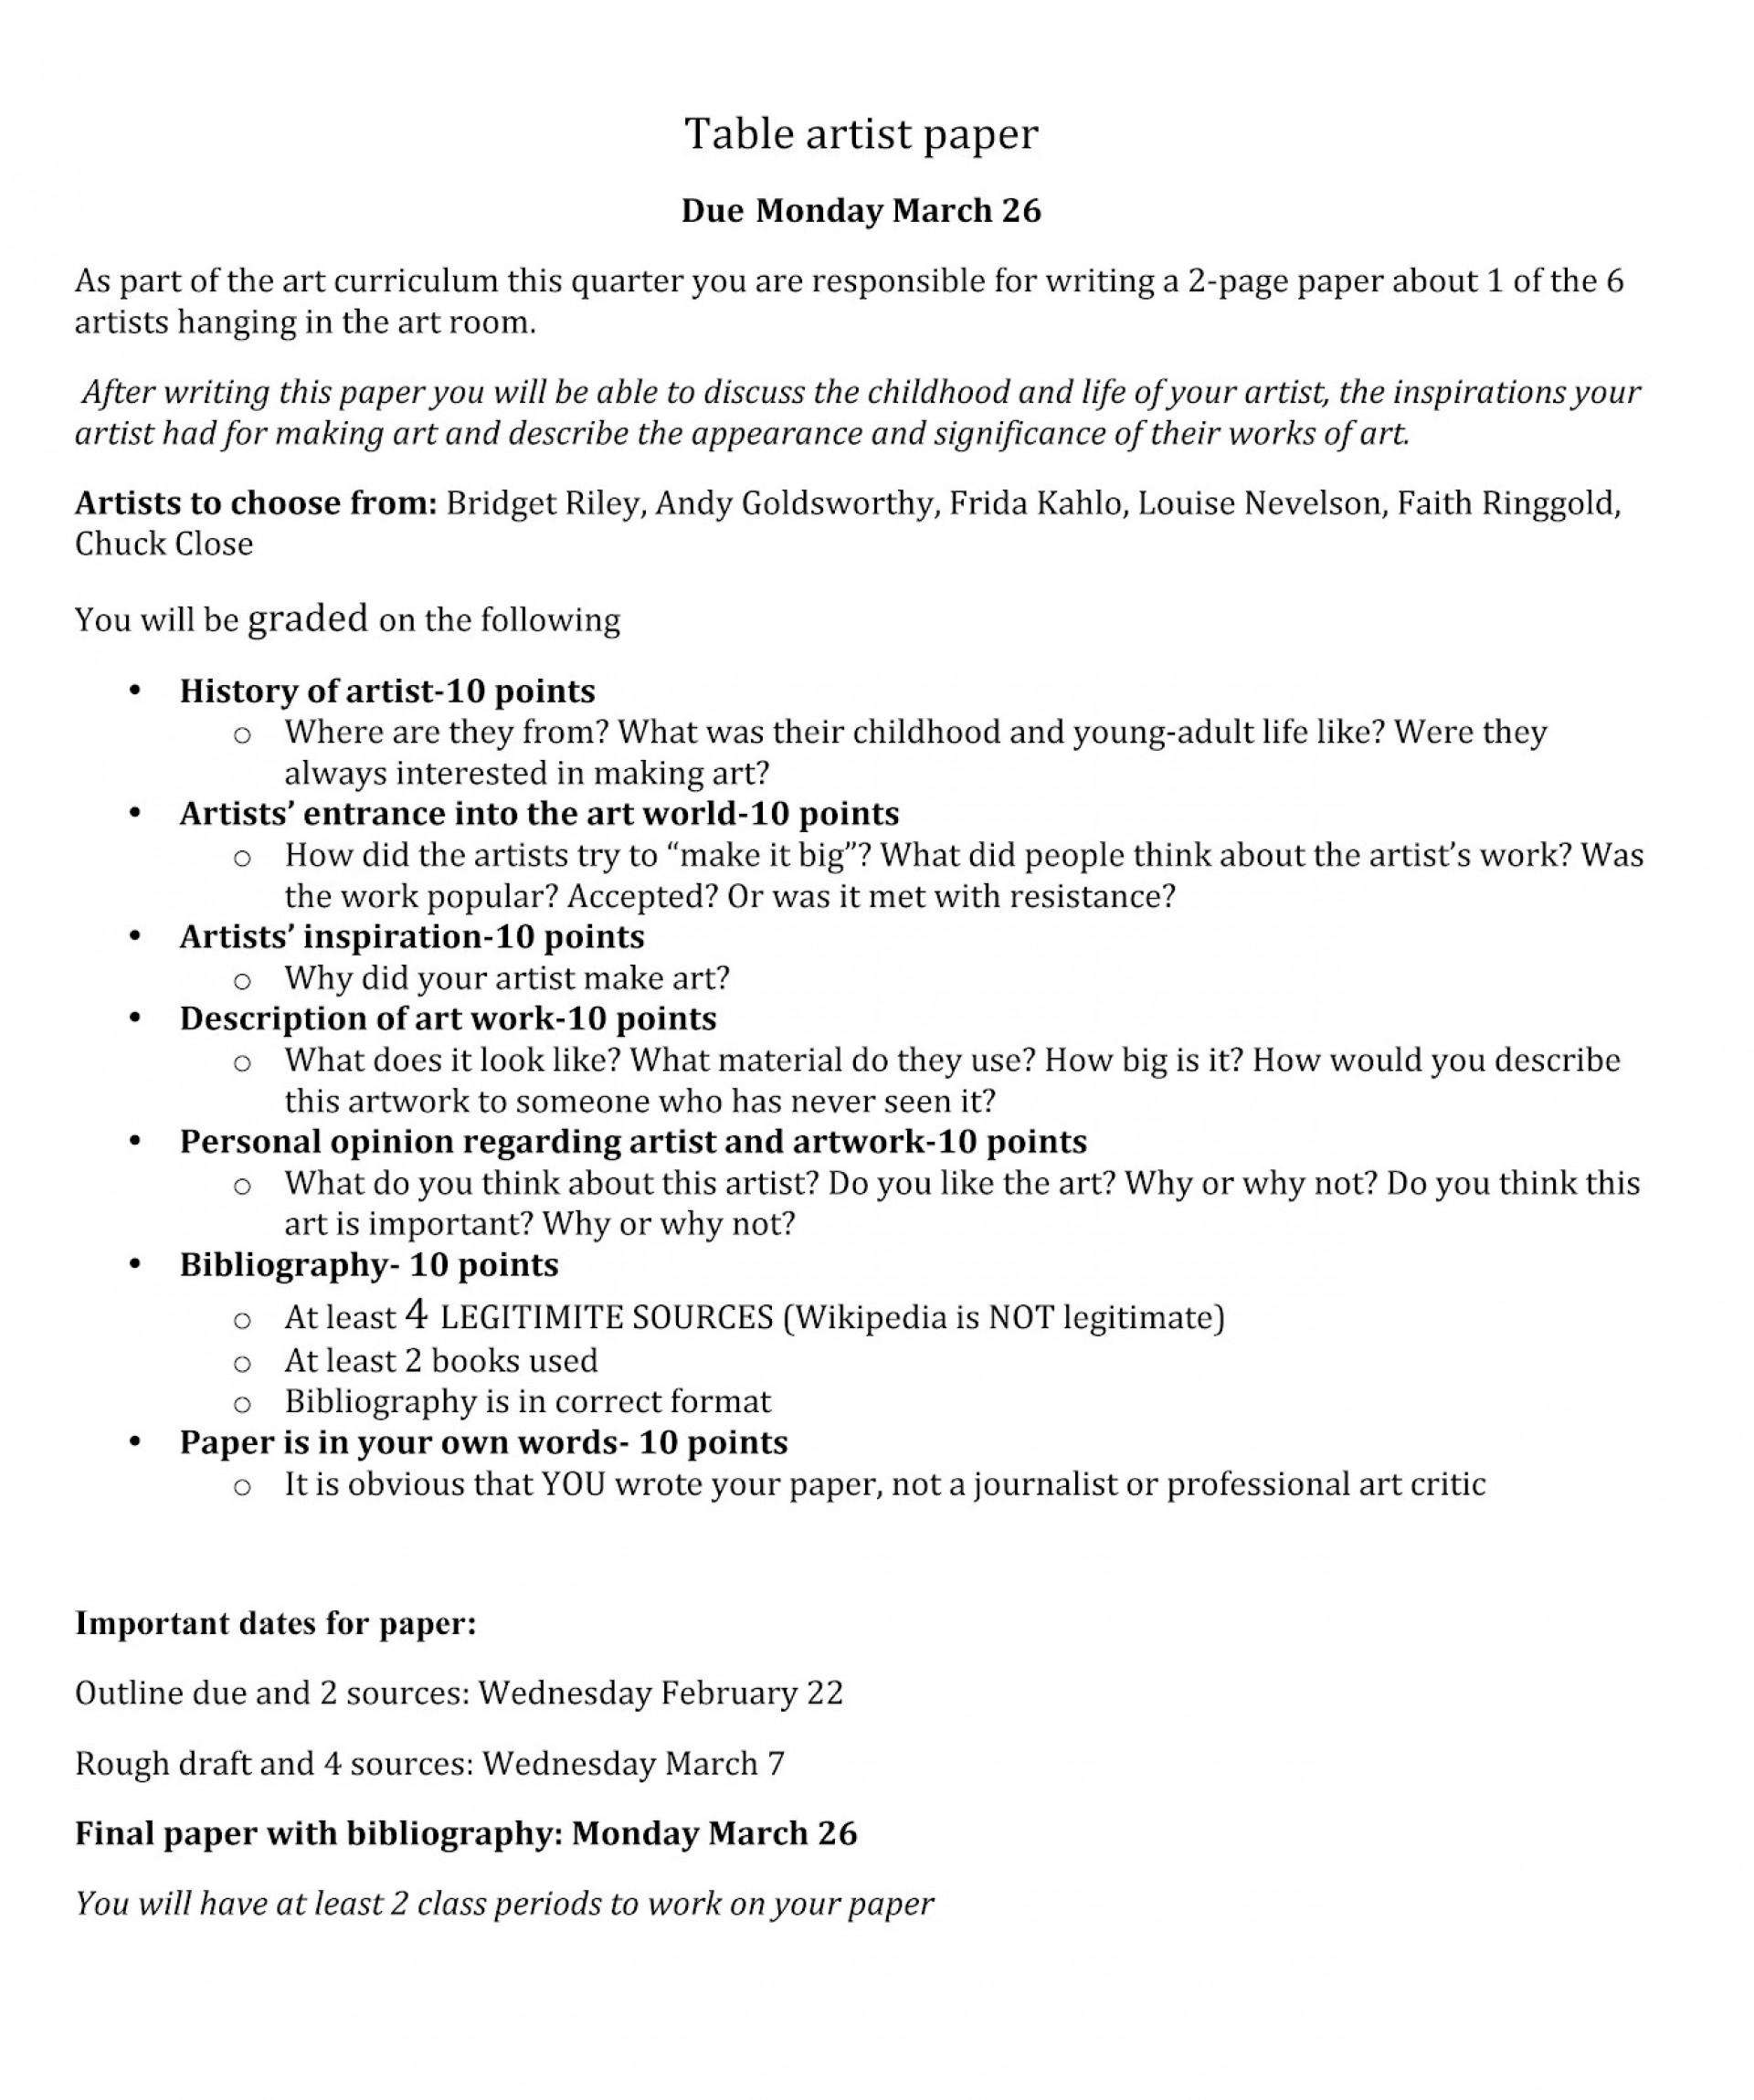 014 Research Paper Good Topics For College English Dreaded Class 1920